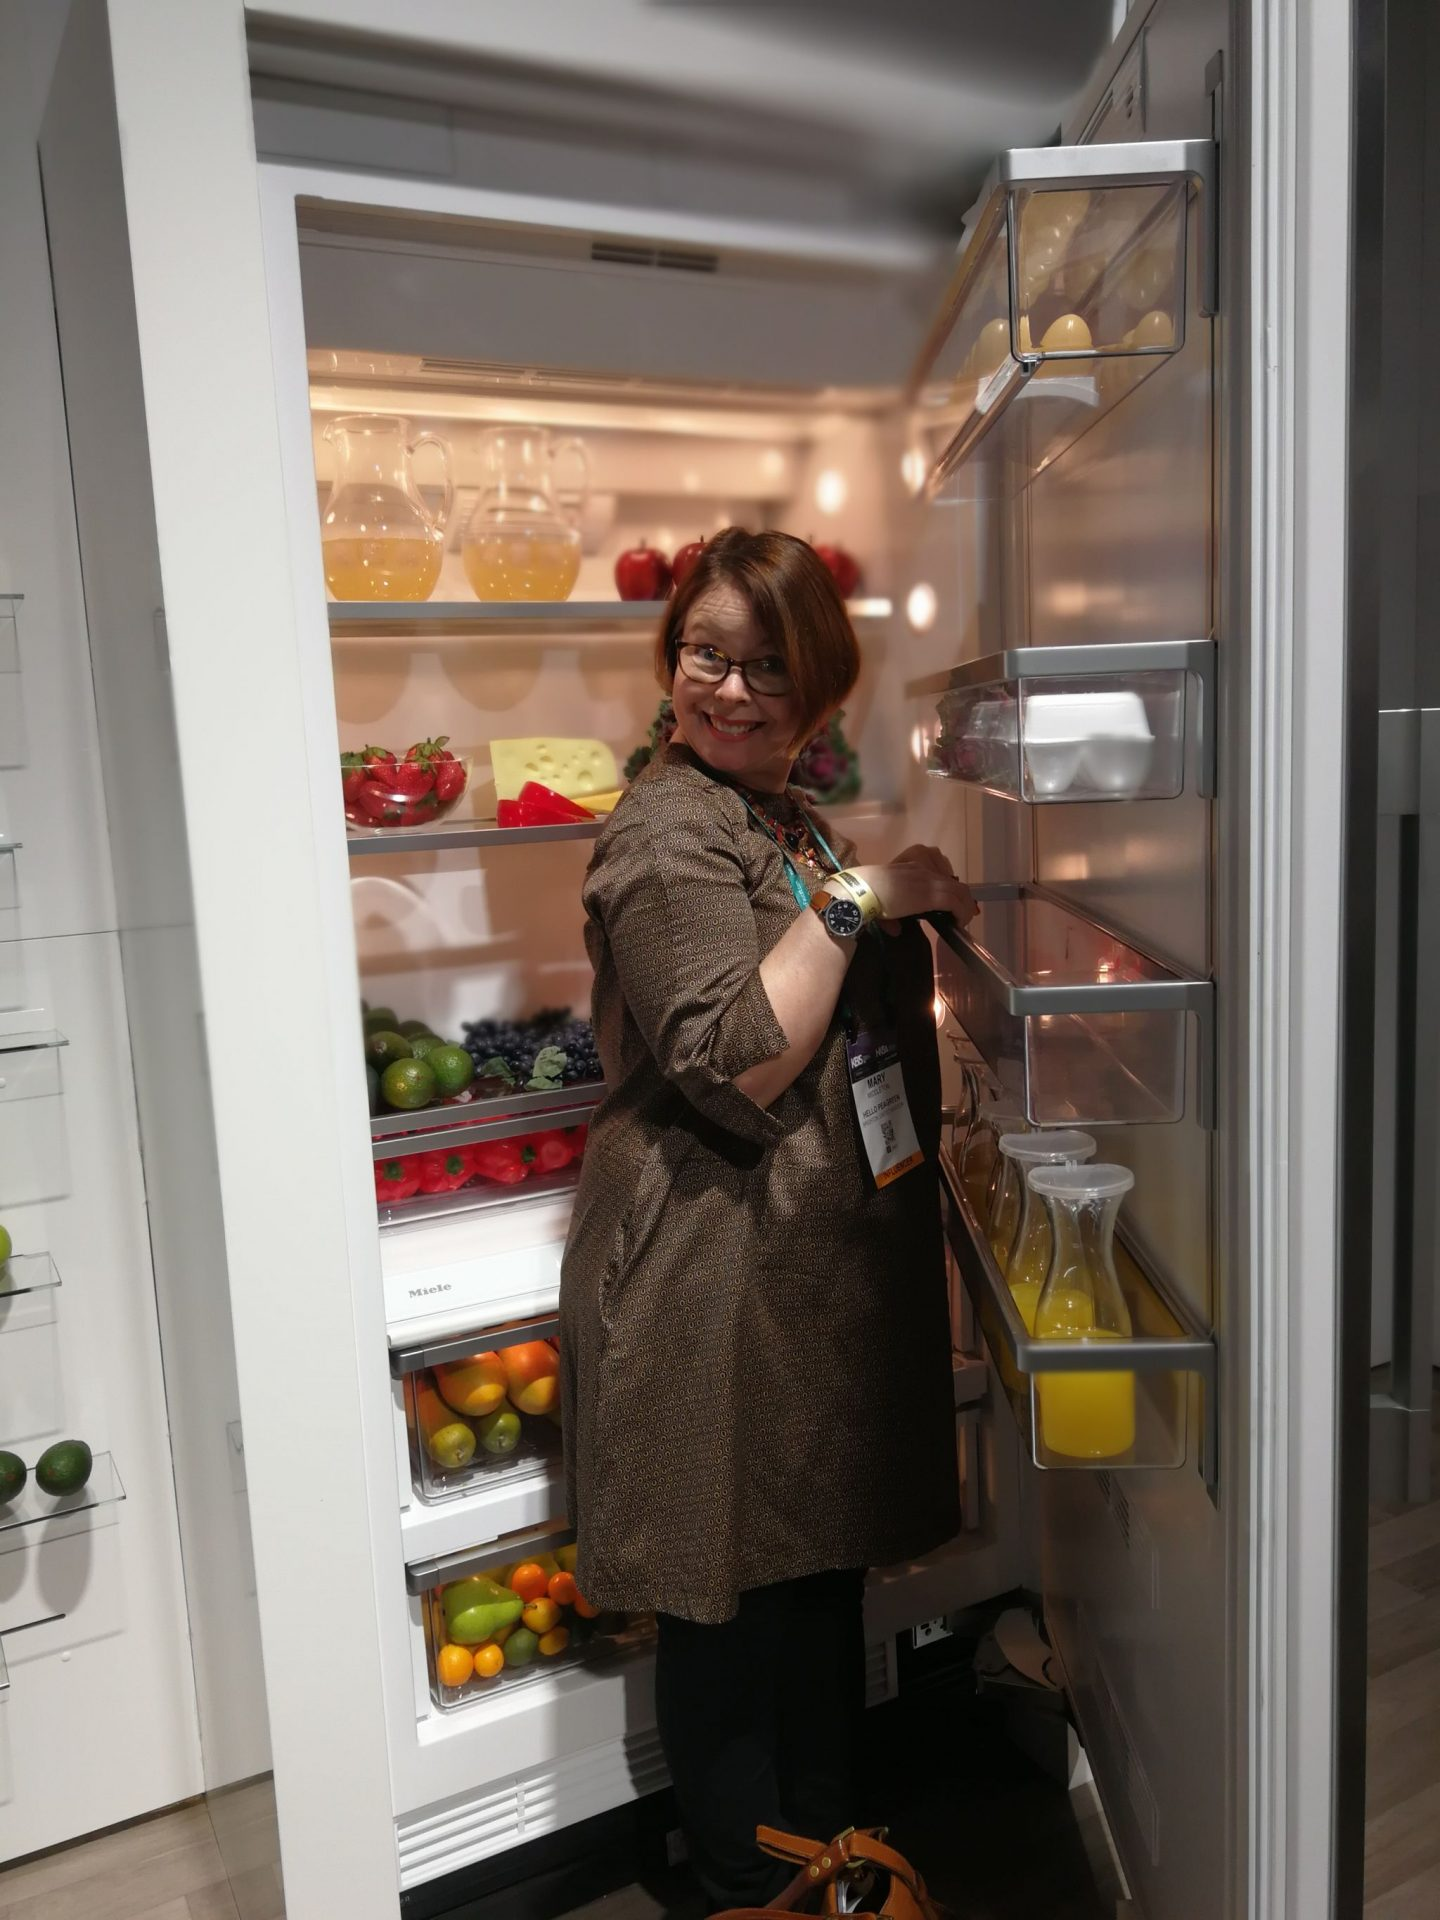 hello peagreen, KBIS, blogtour KBIS, Kitchen and bathroom design, miele, big fridge